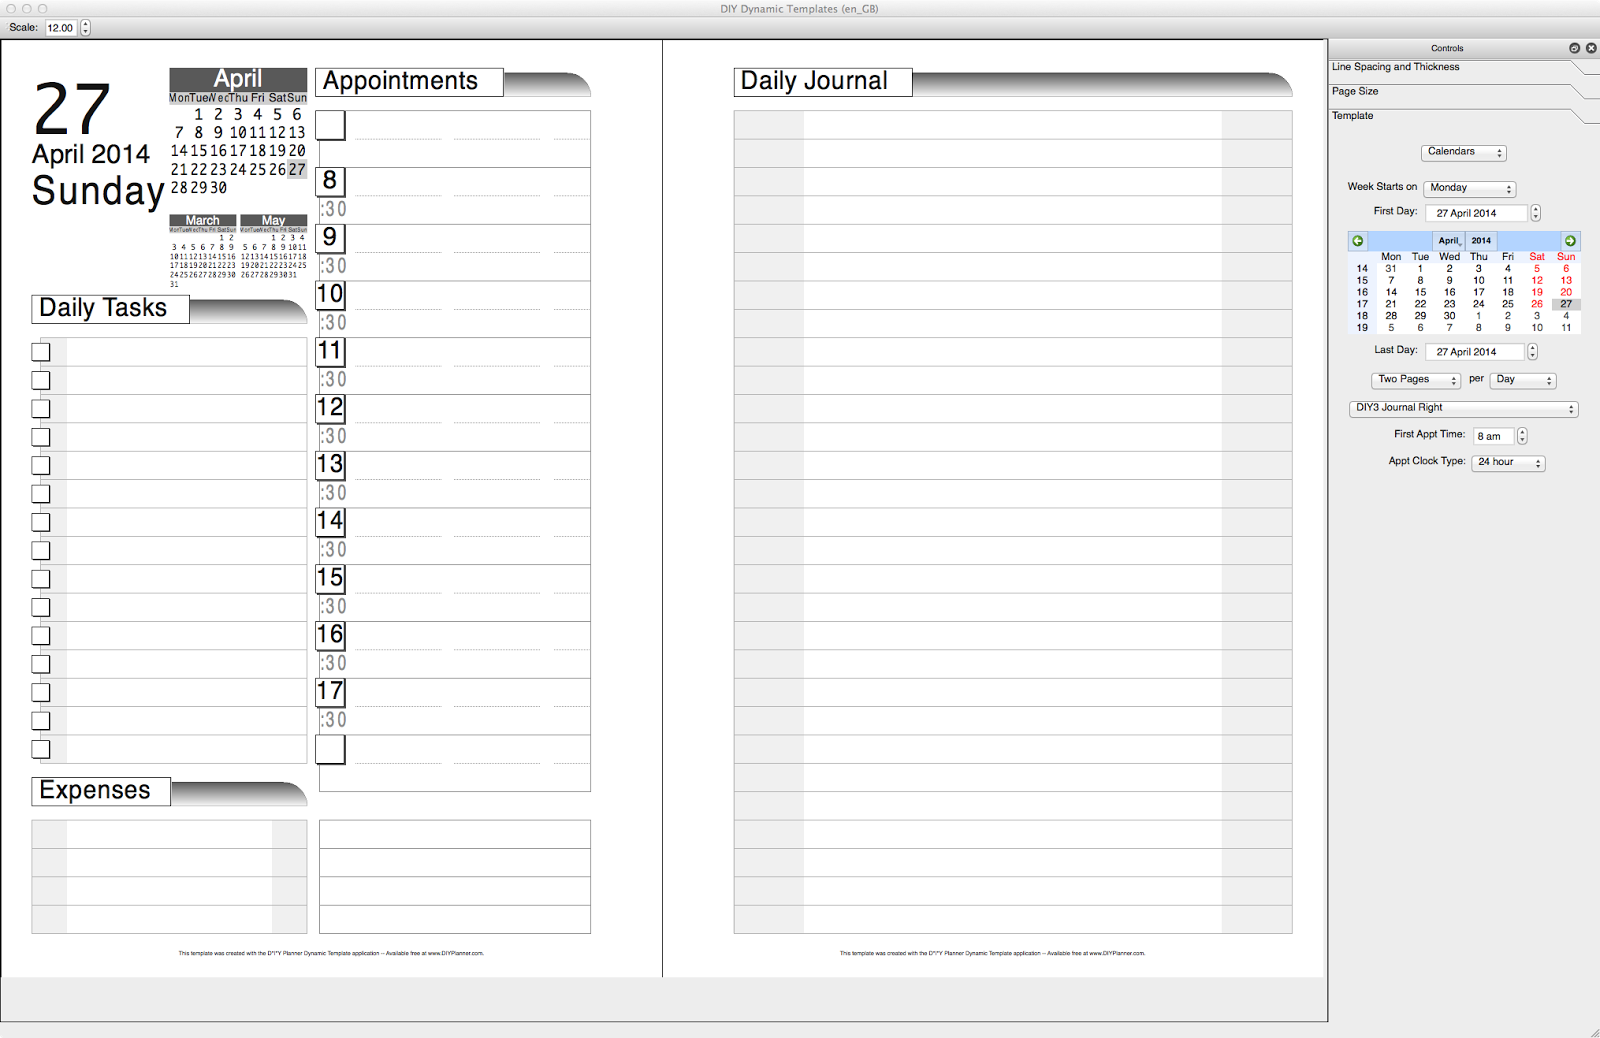 picture relating to Diy Planner Templates titled Philofaxy: Do it yourself Dynamic Templates